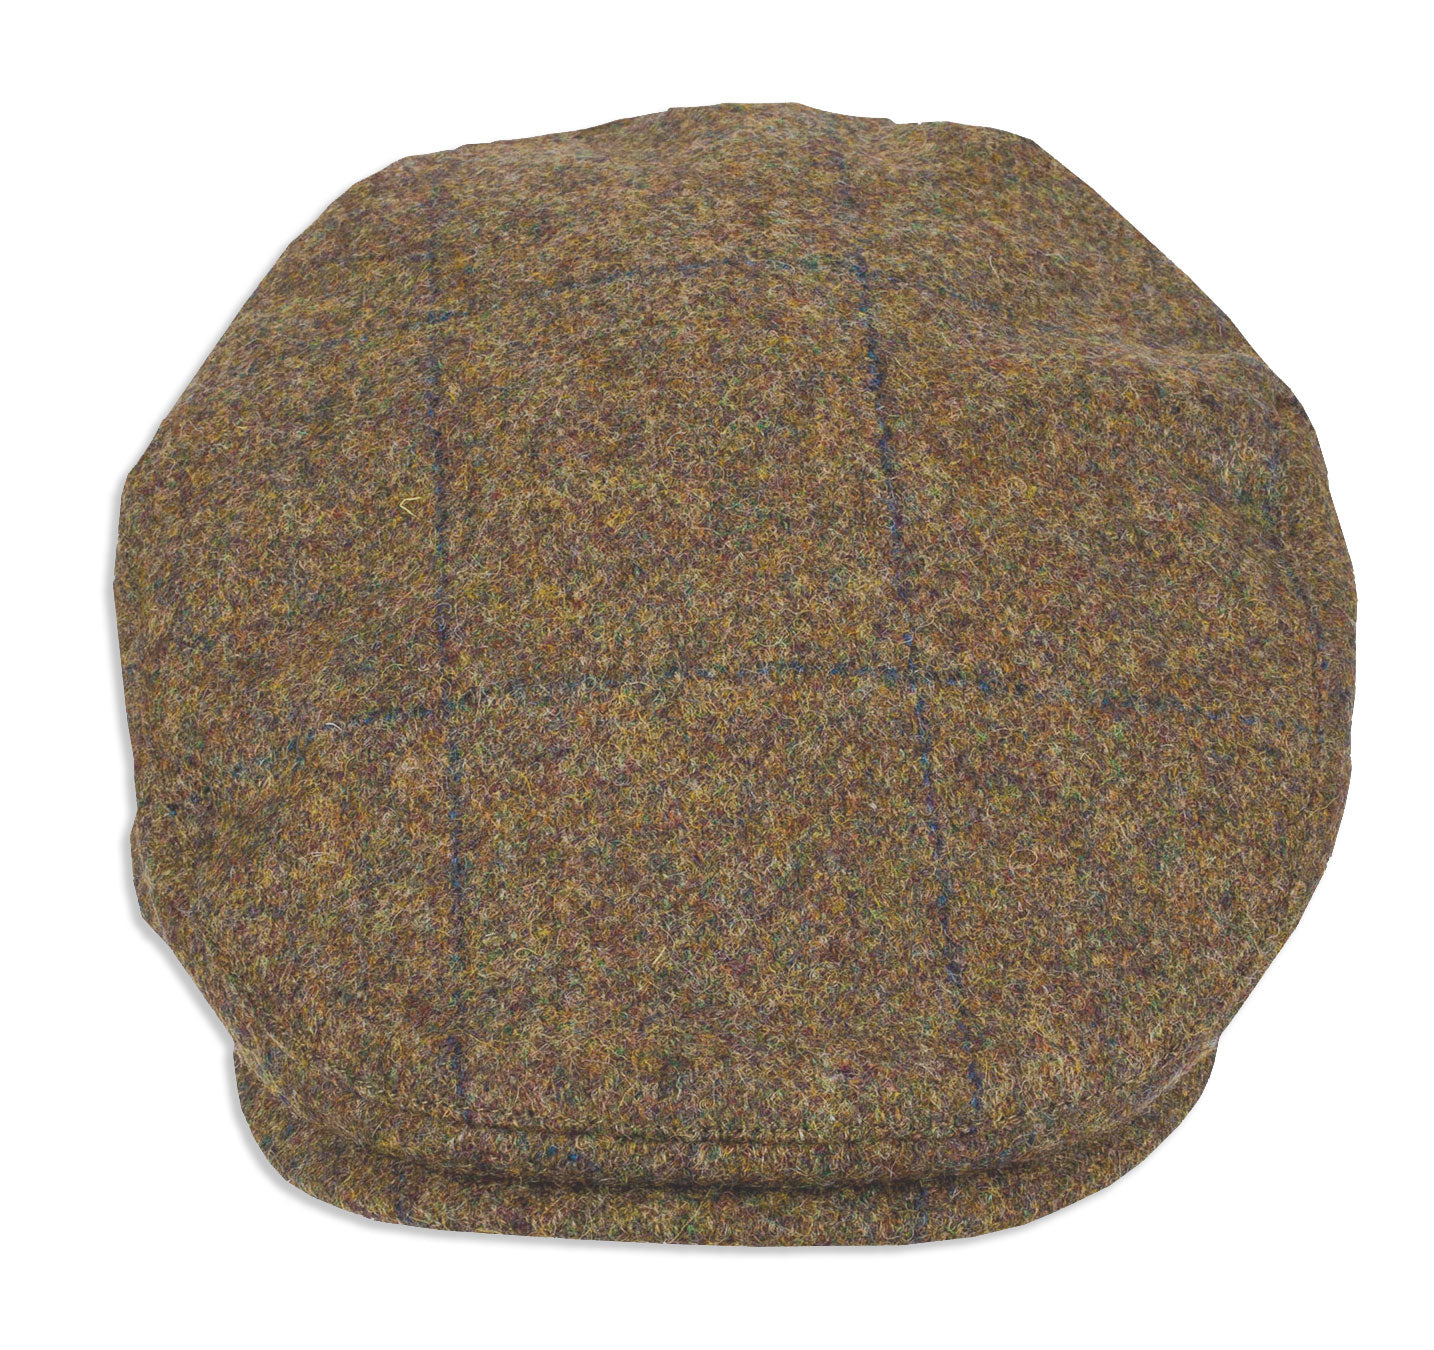 A traditionally styled flat cap made from British tweed.